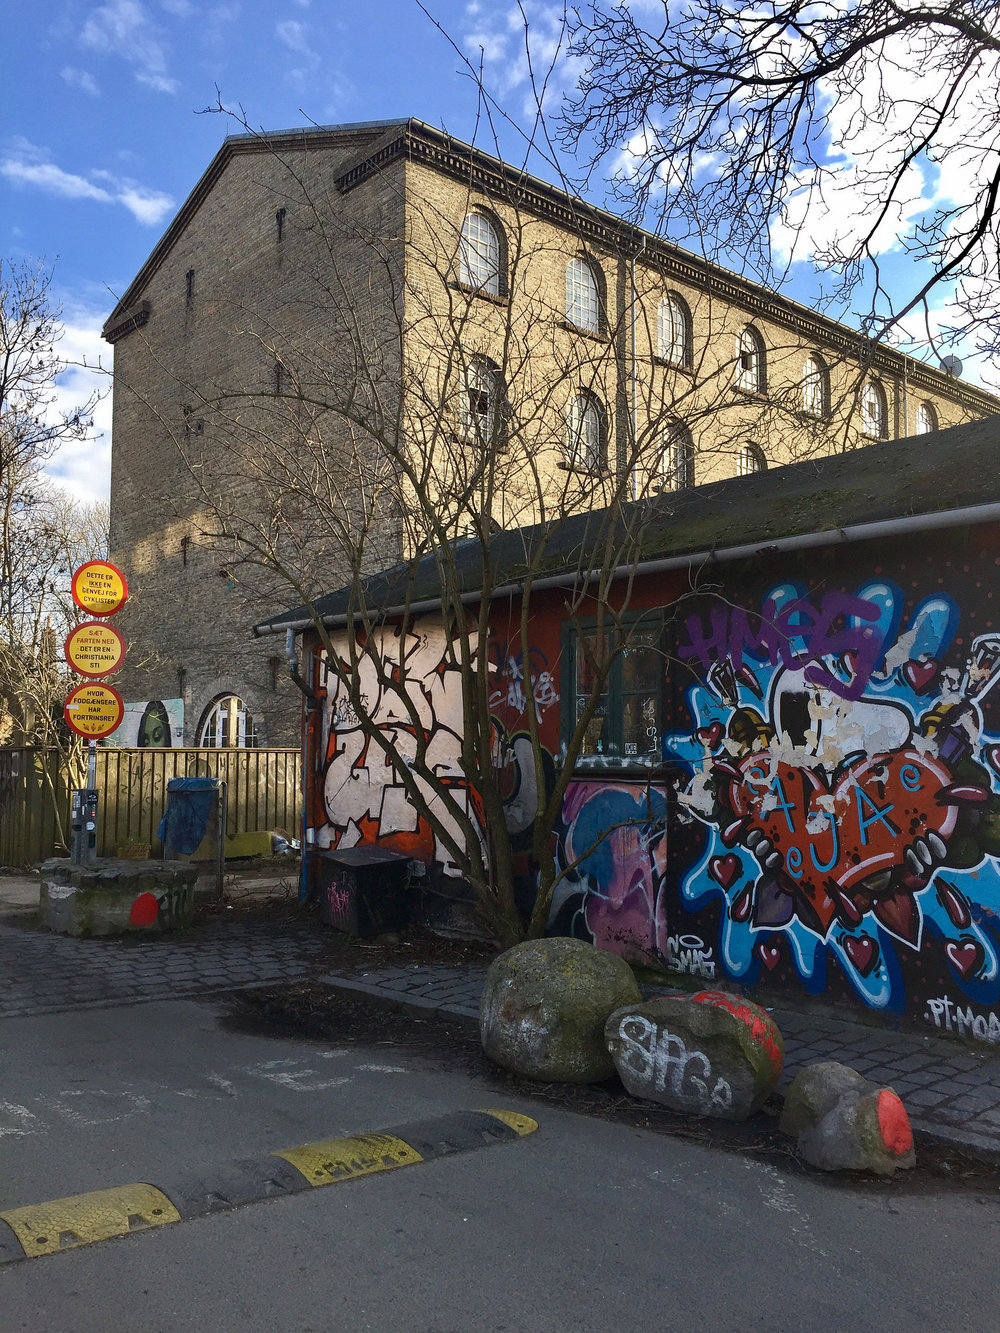 Leaving Christiania